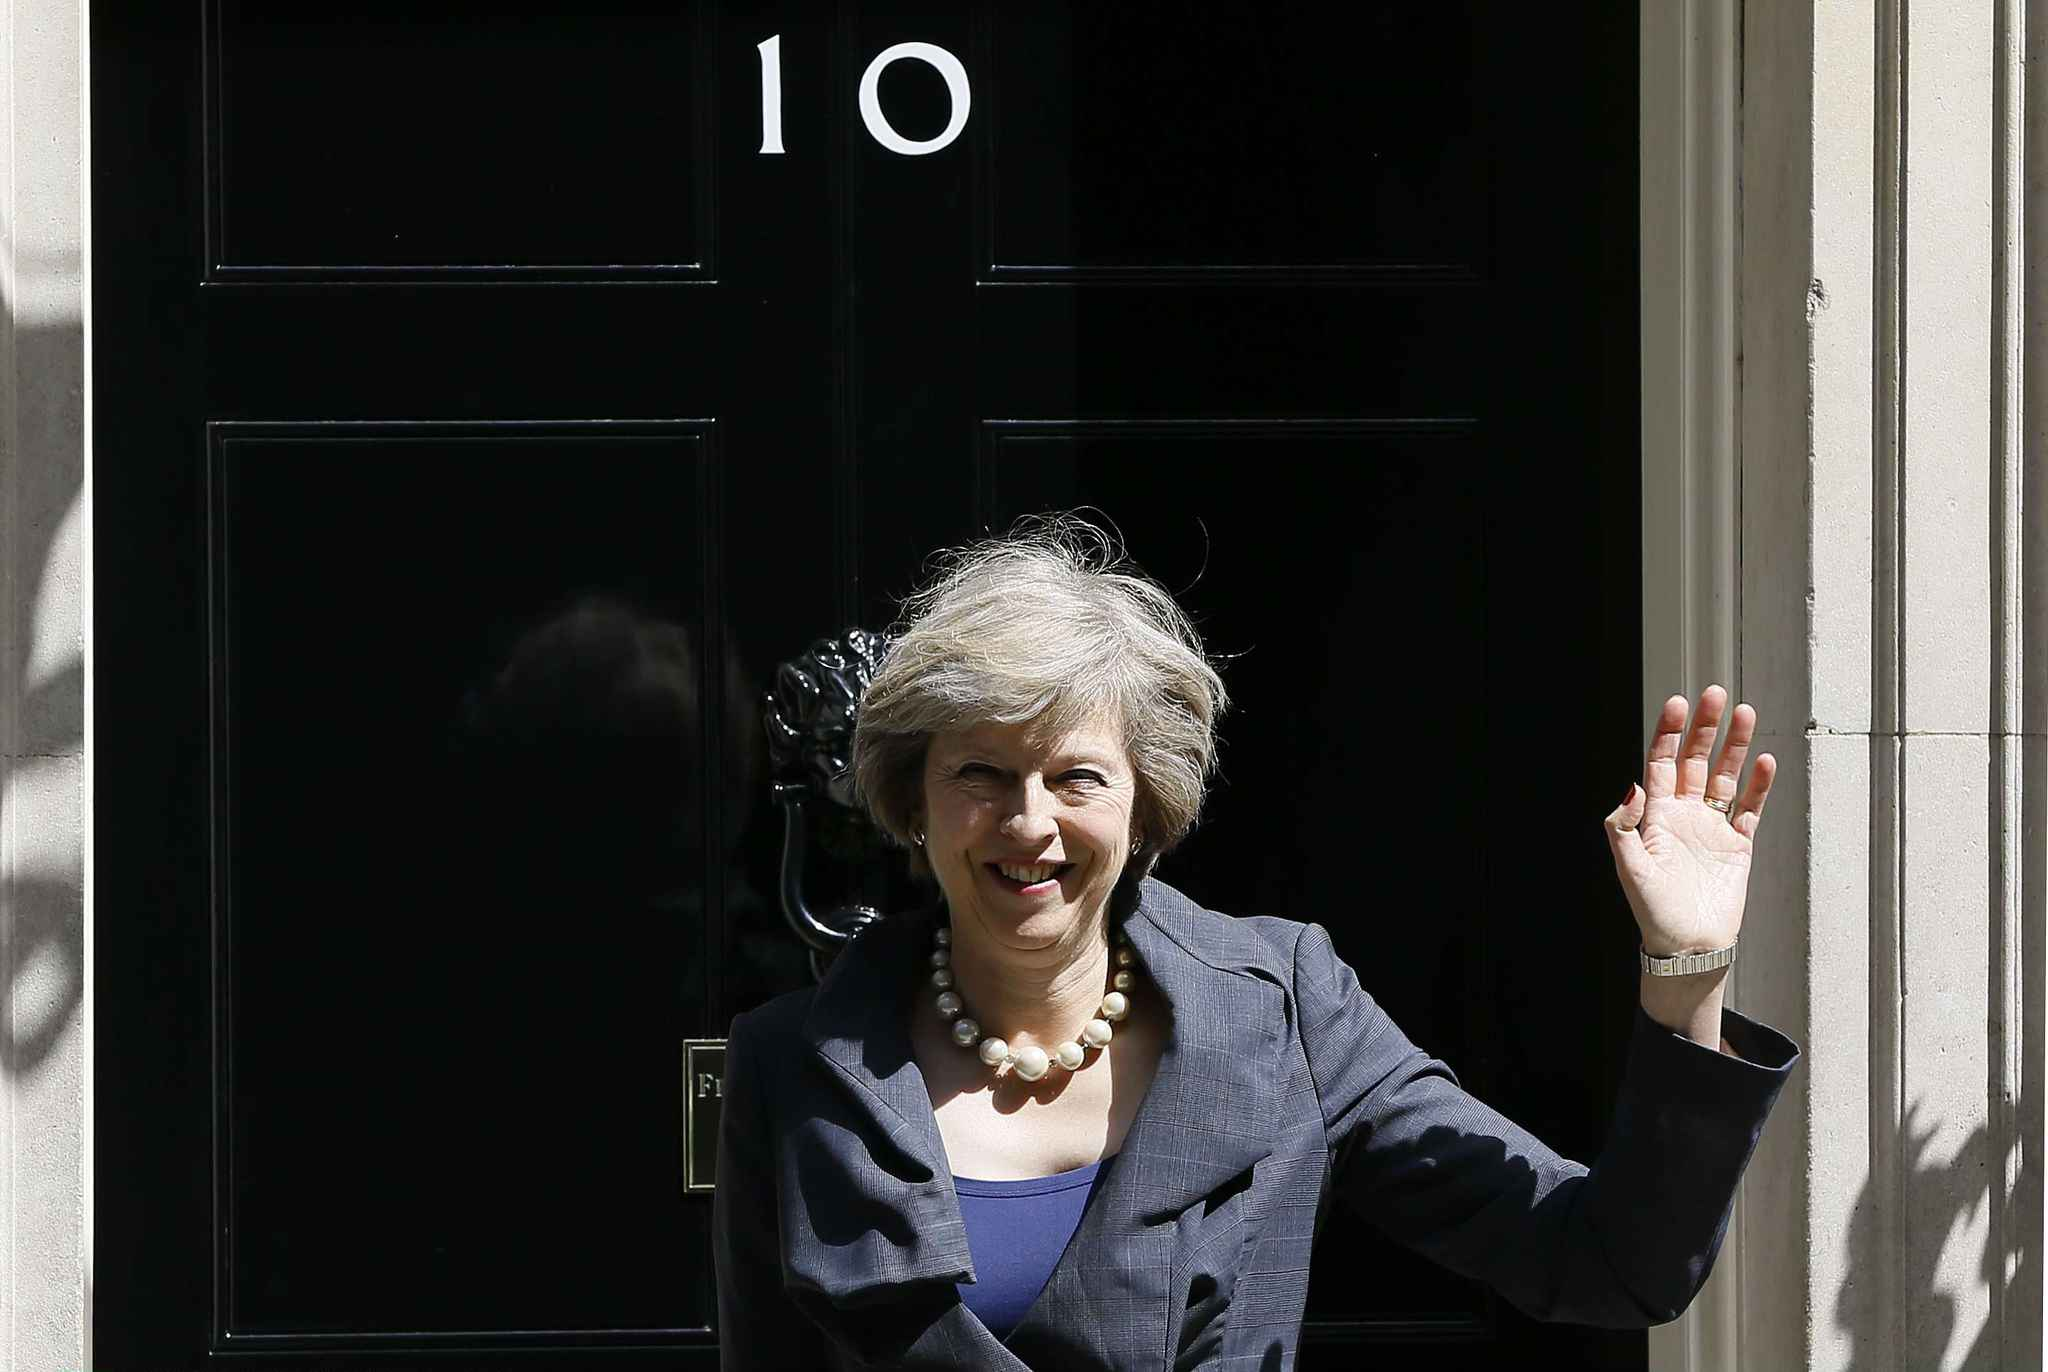 2048x1536-fit_future-premiere-ministre-britannique-theresa-may-12-juillet-2016-devant-10-downing-street-londres-angleterre